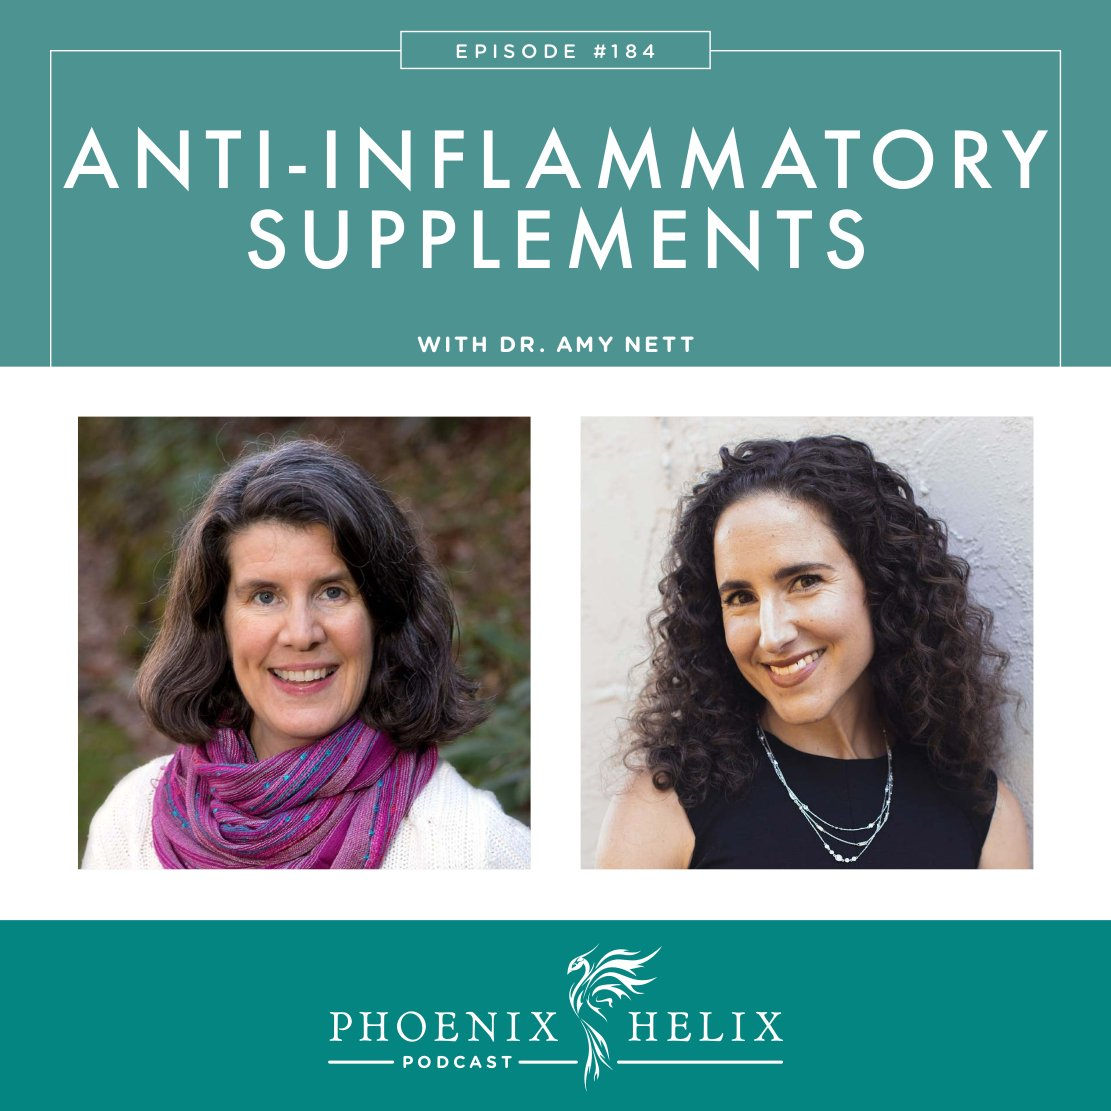 Anti-Inflammatory Supplements with Dr. Amy Nett | Phoenix Helix Podcast